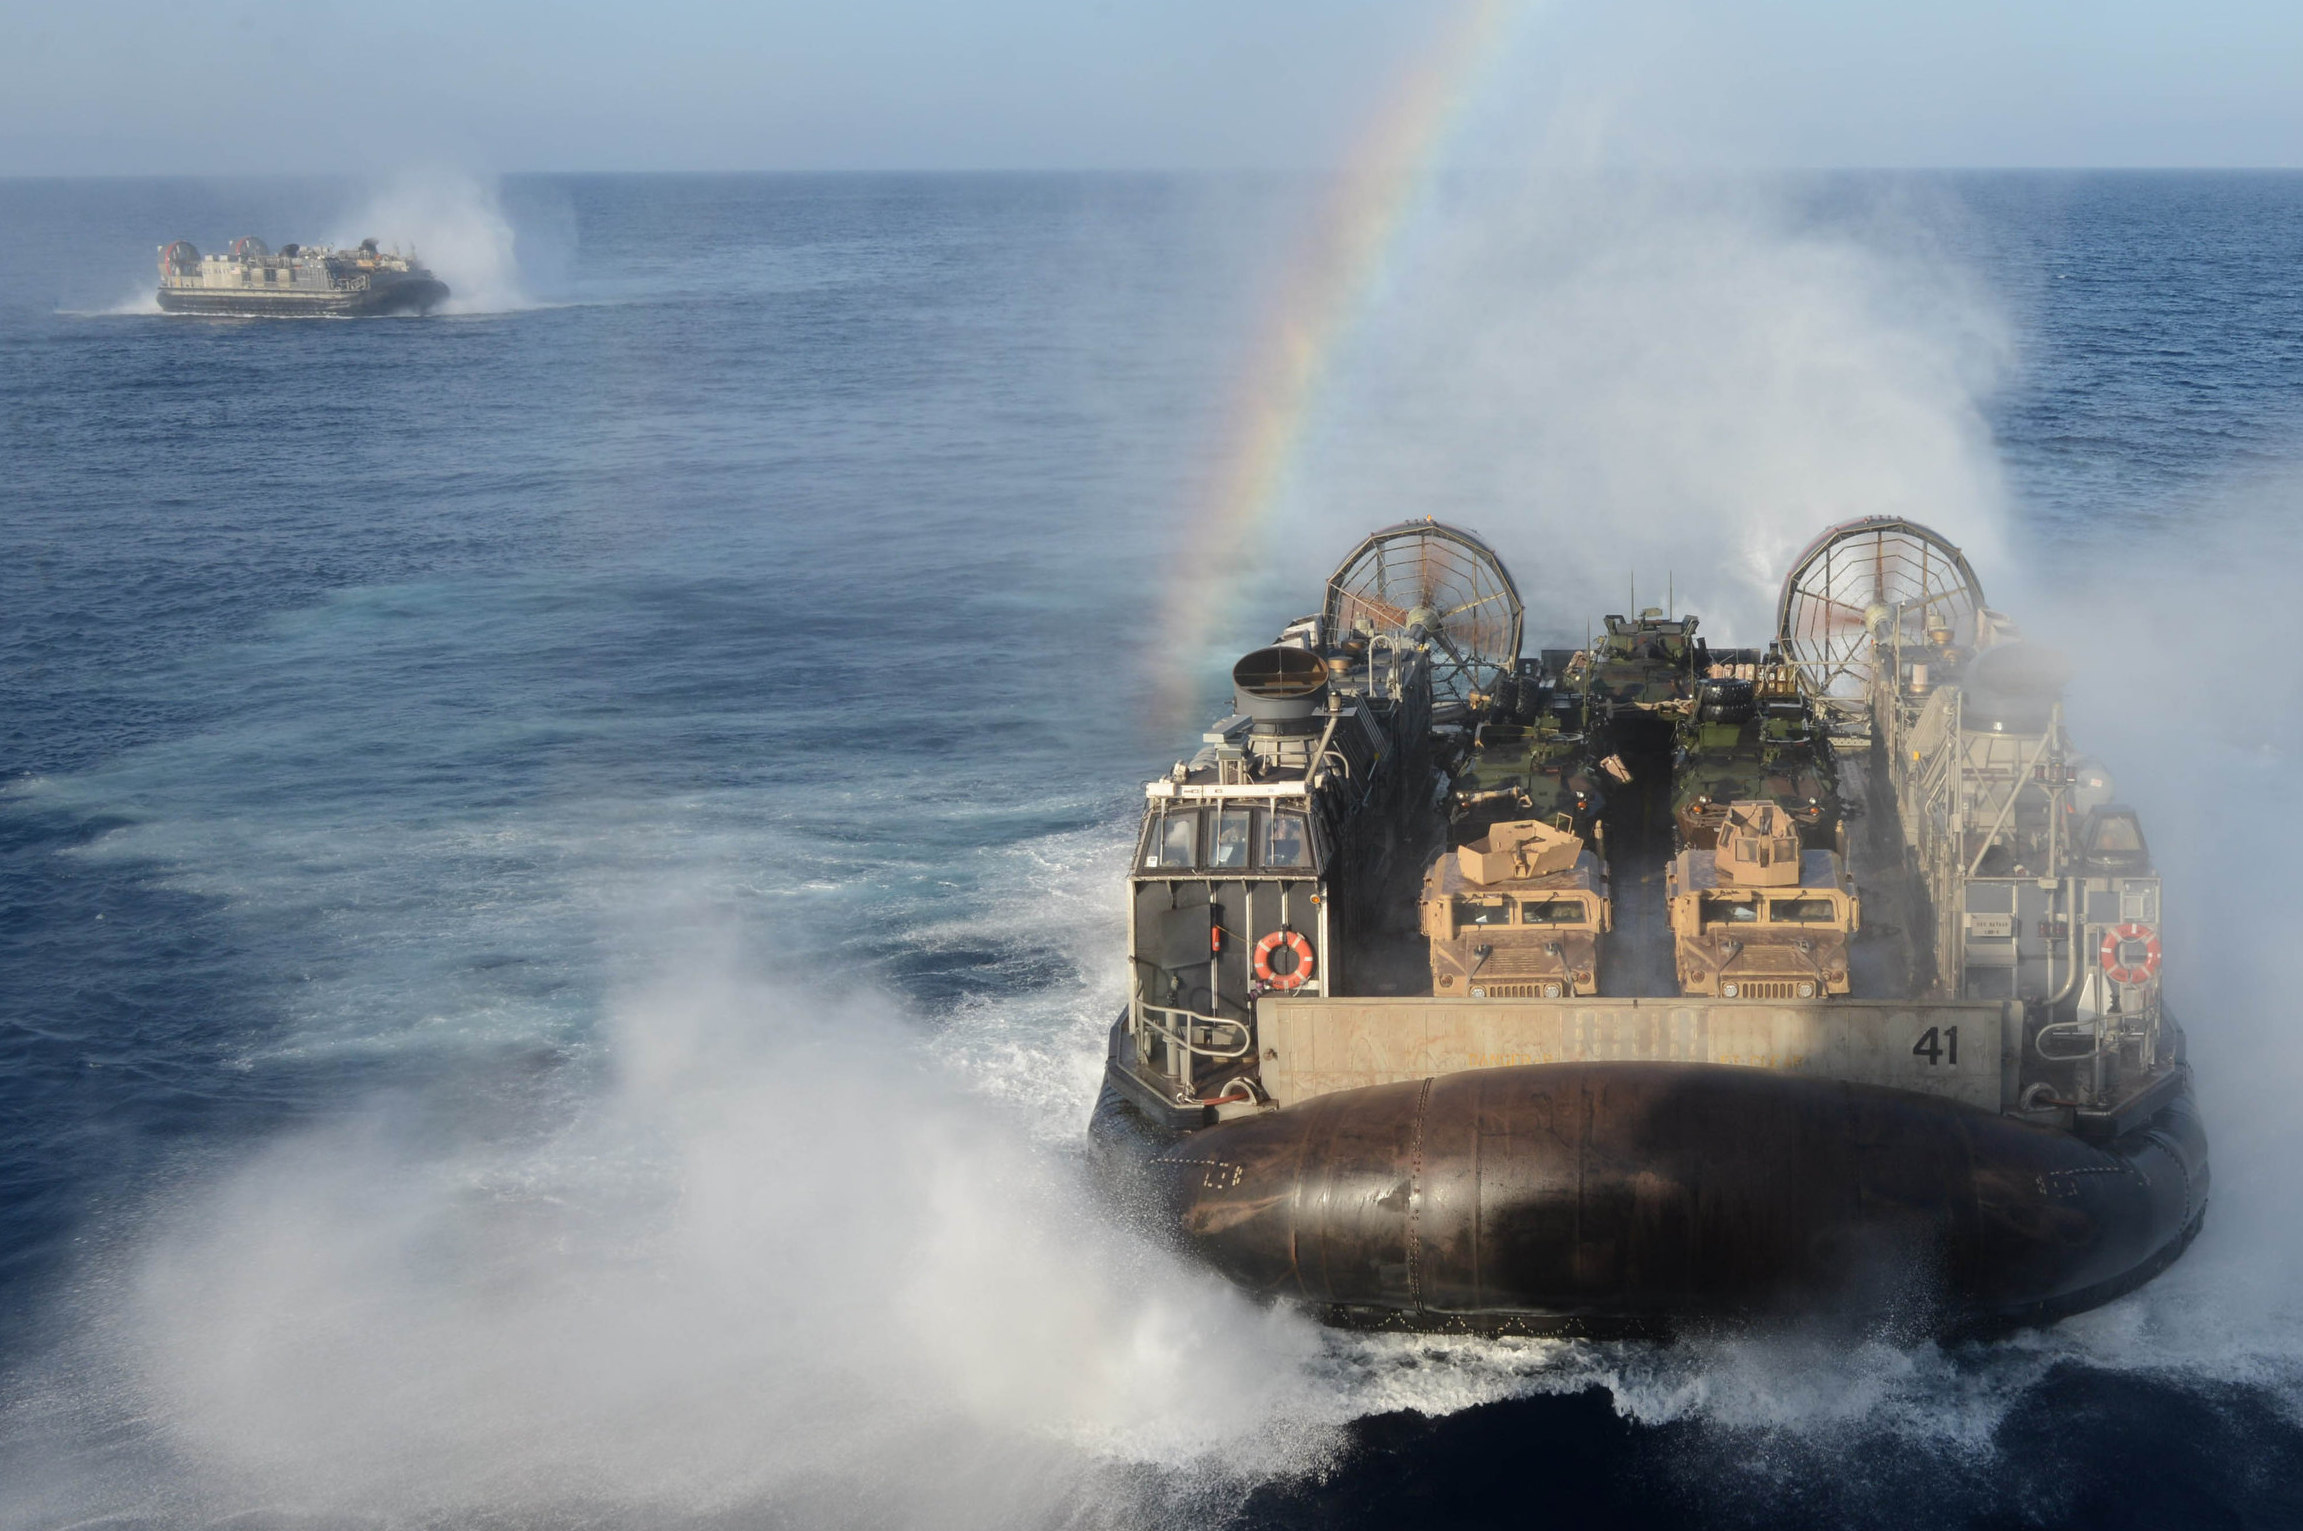 Landing craft air cushion (LCAC) vehicles from Assault Craft Unit (ACU) 4 approach the well deck of the multipurpose amphibious assault ship USS Bataan (LHD-5) on April 28, 2014. US Navy Photo